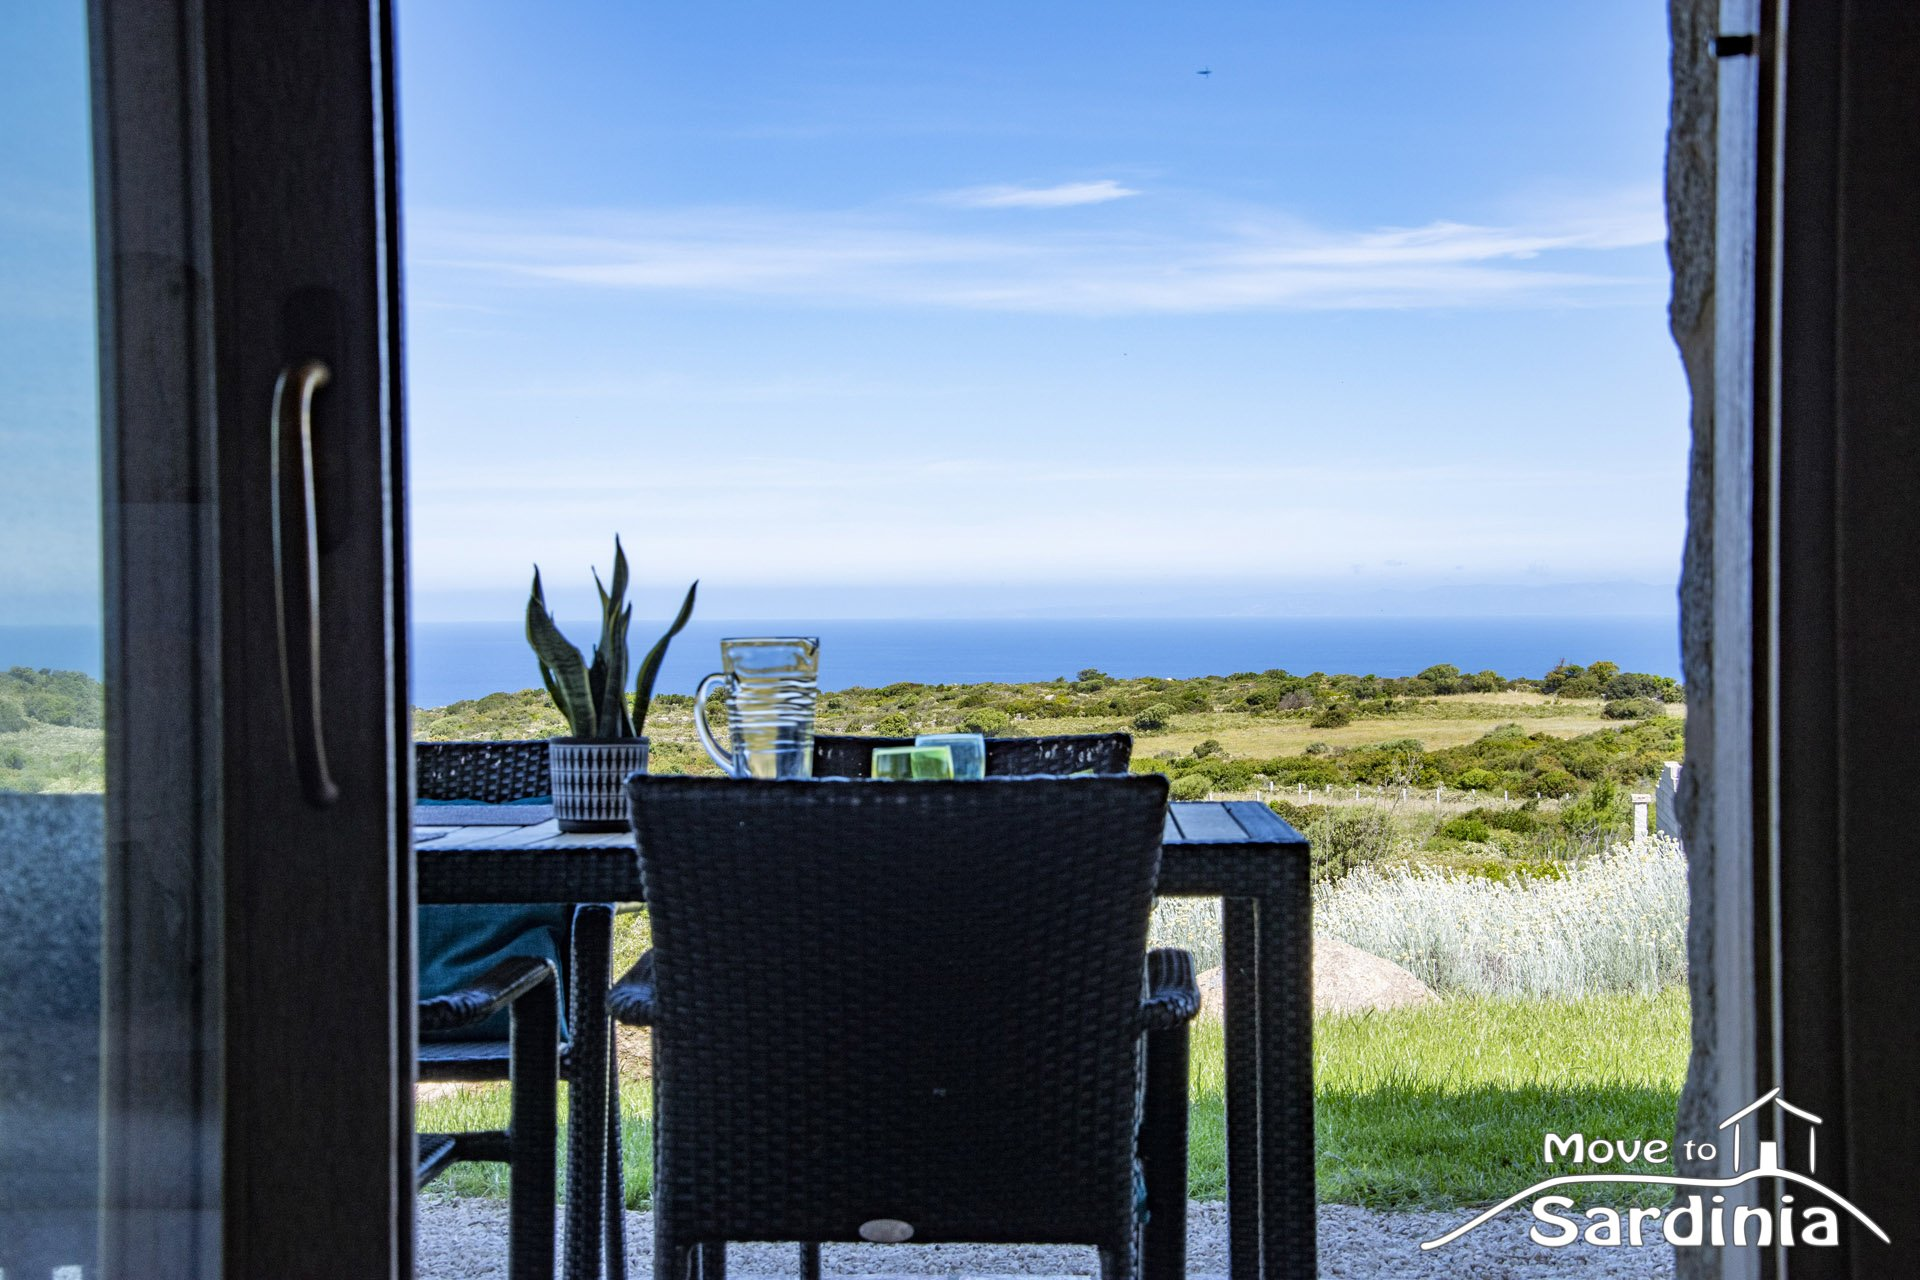 Country house for sale in Sardinia, amazing sea view in a unique location.